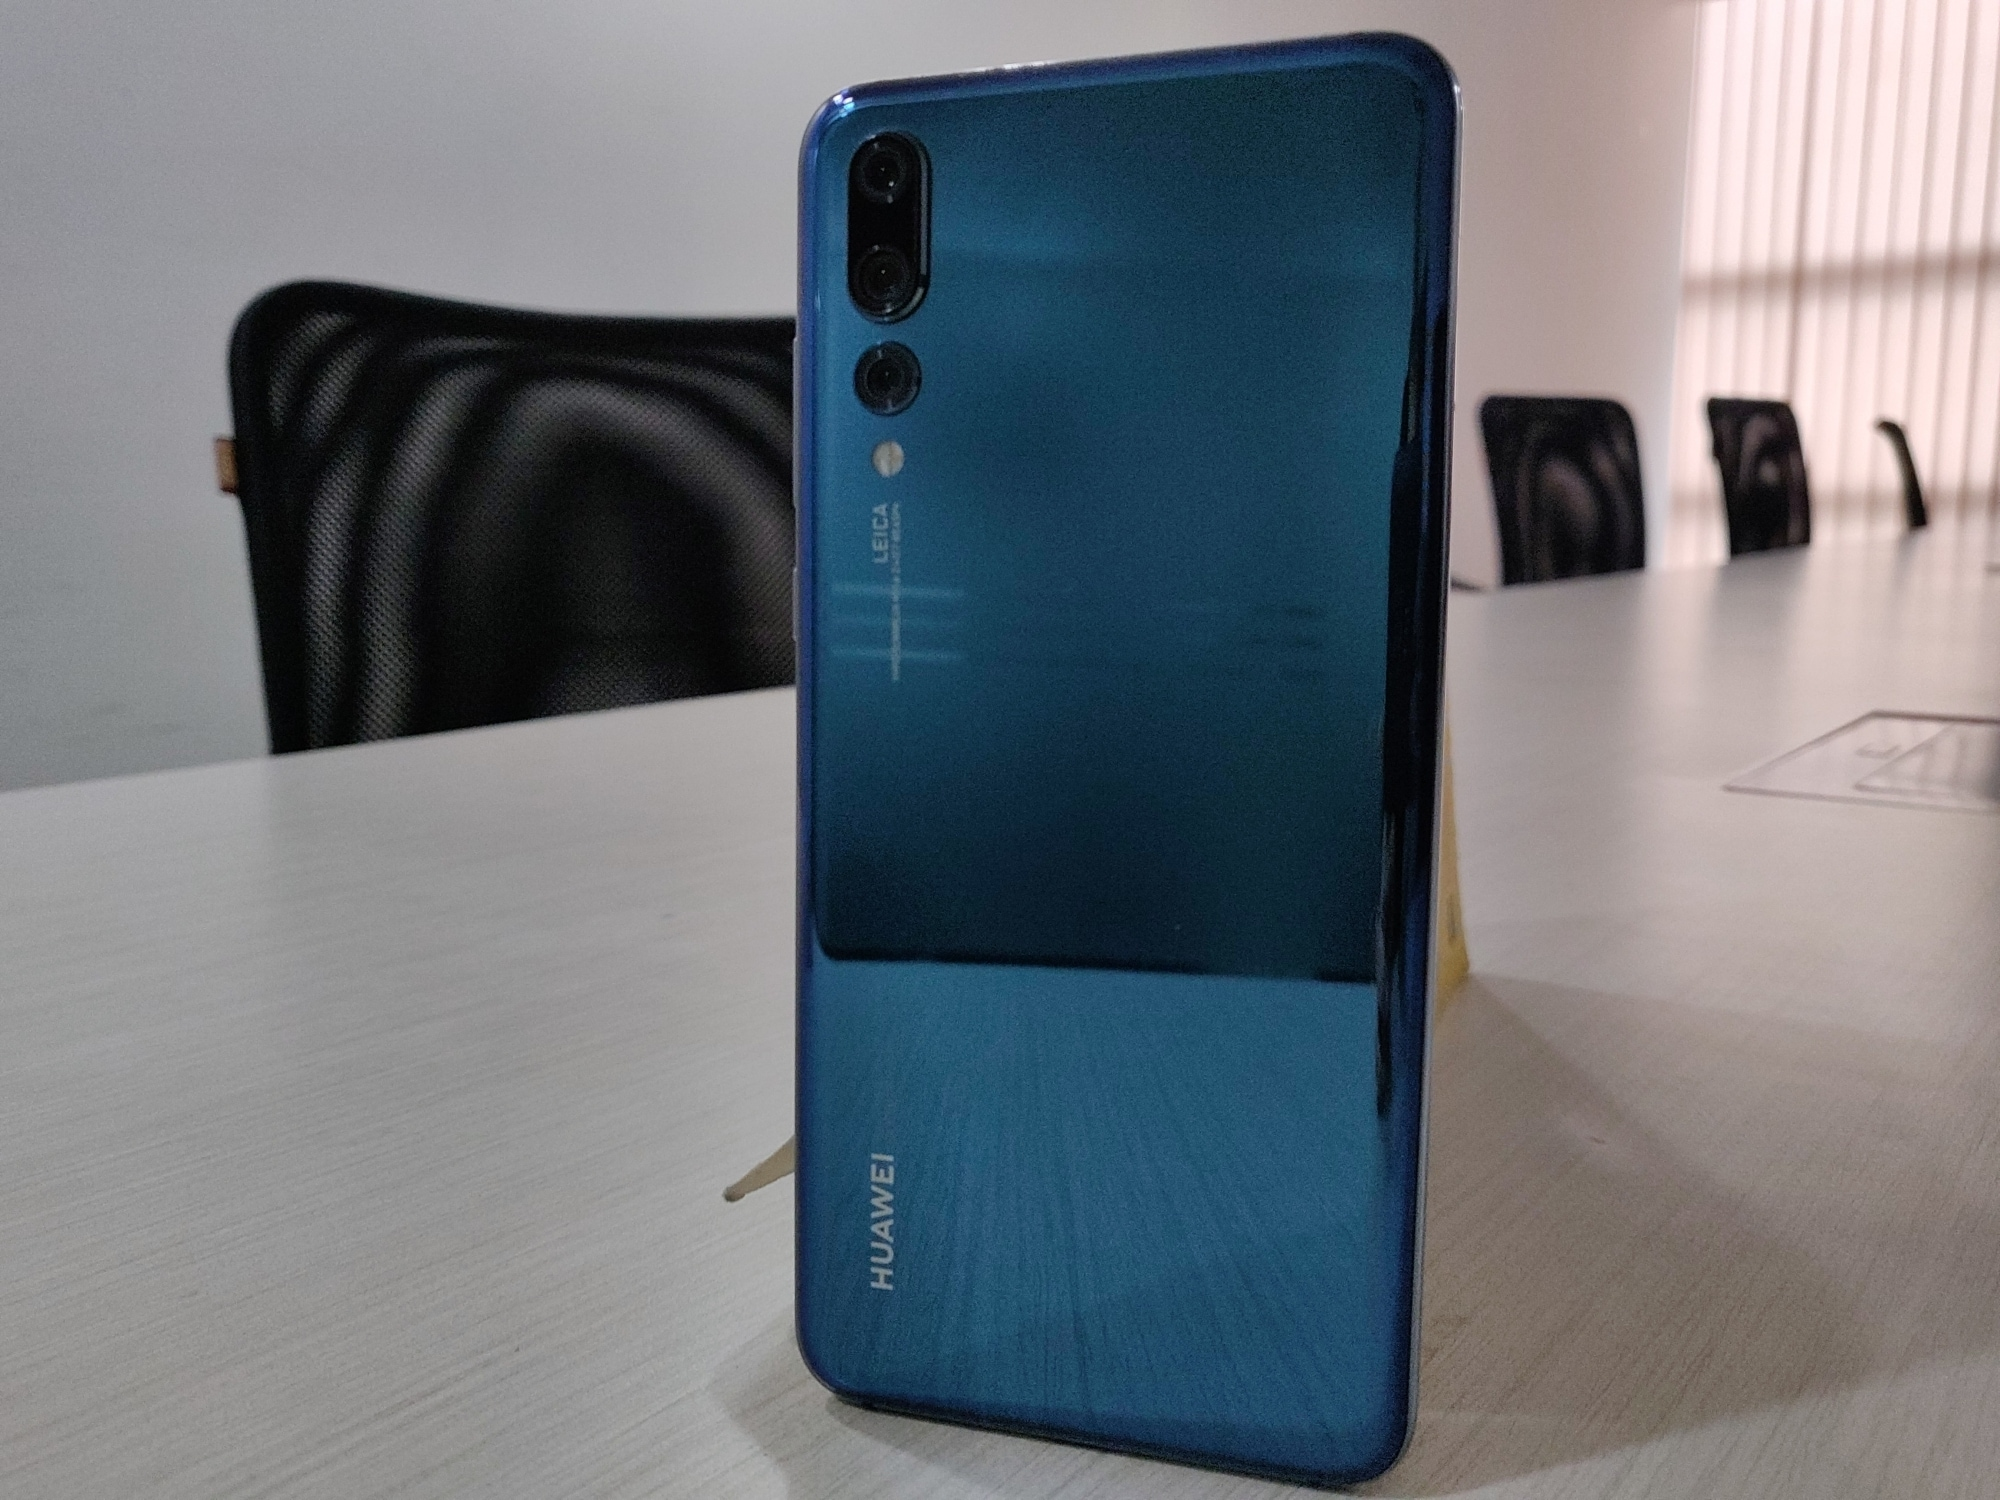 Huawei Y9 Prime 2019- This phone is set to launch in August 1, 2019. The handset will be powered by the Kirin 710 processor and comes with a 6.59-inch FHD+ display. There will be a 16 MP primary sensor coupled with an 8 MP ultra-wide camera and a 2MP depth sensor.